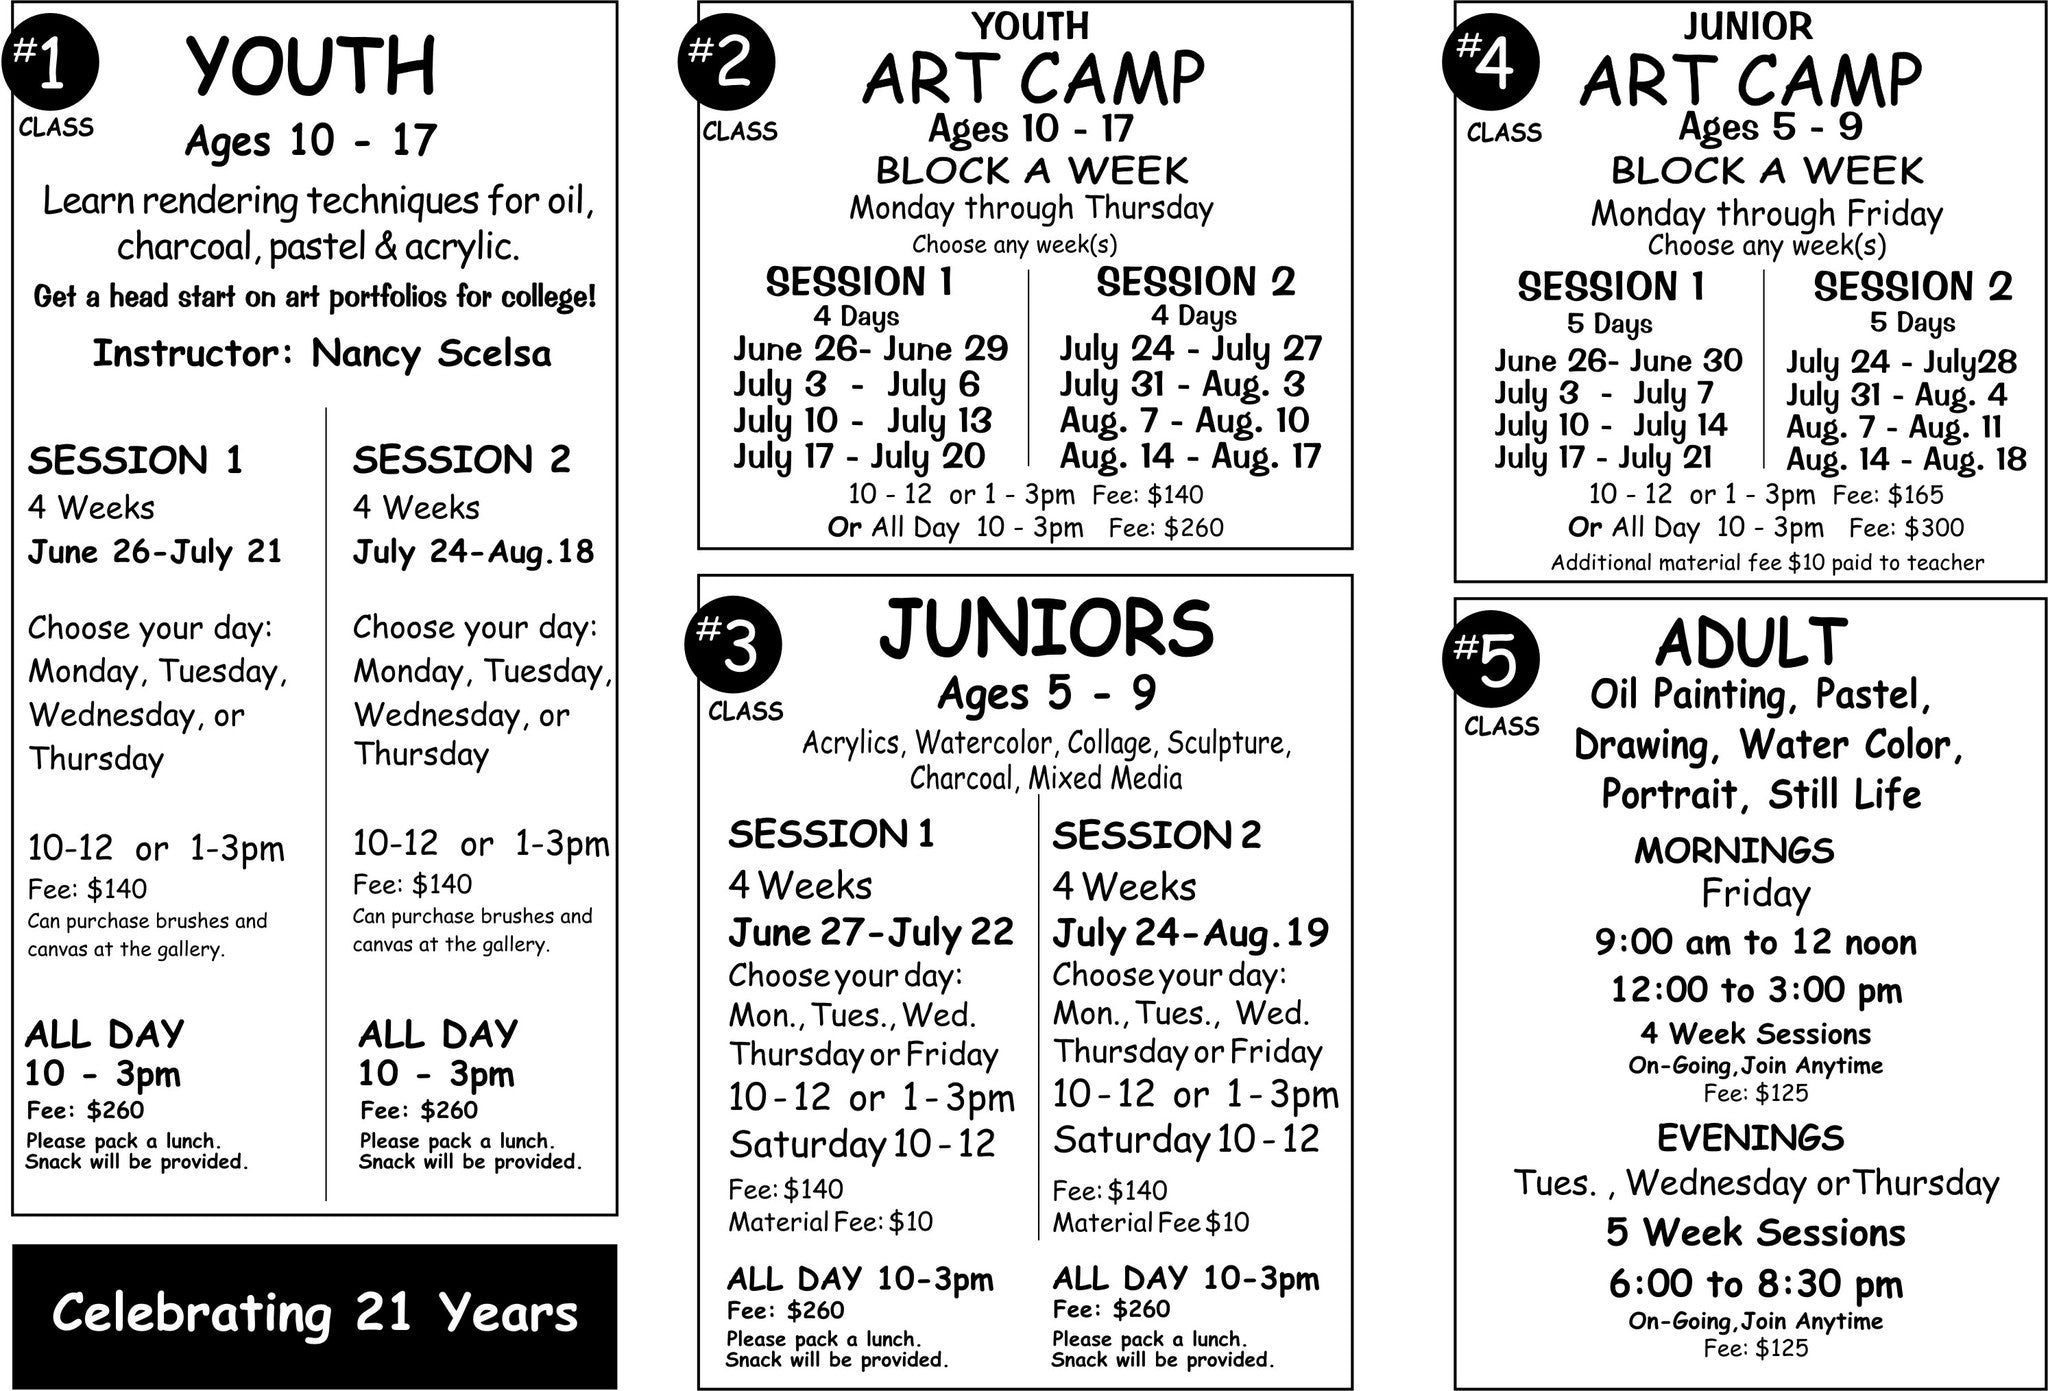 Summer Art Camp Schedule